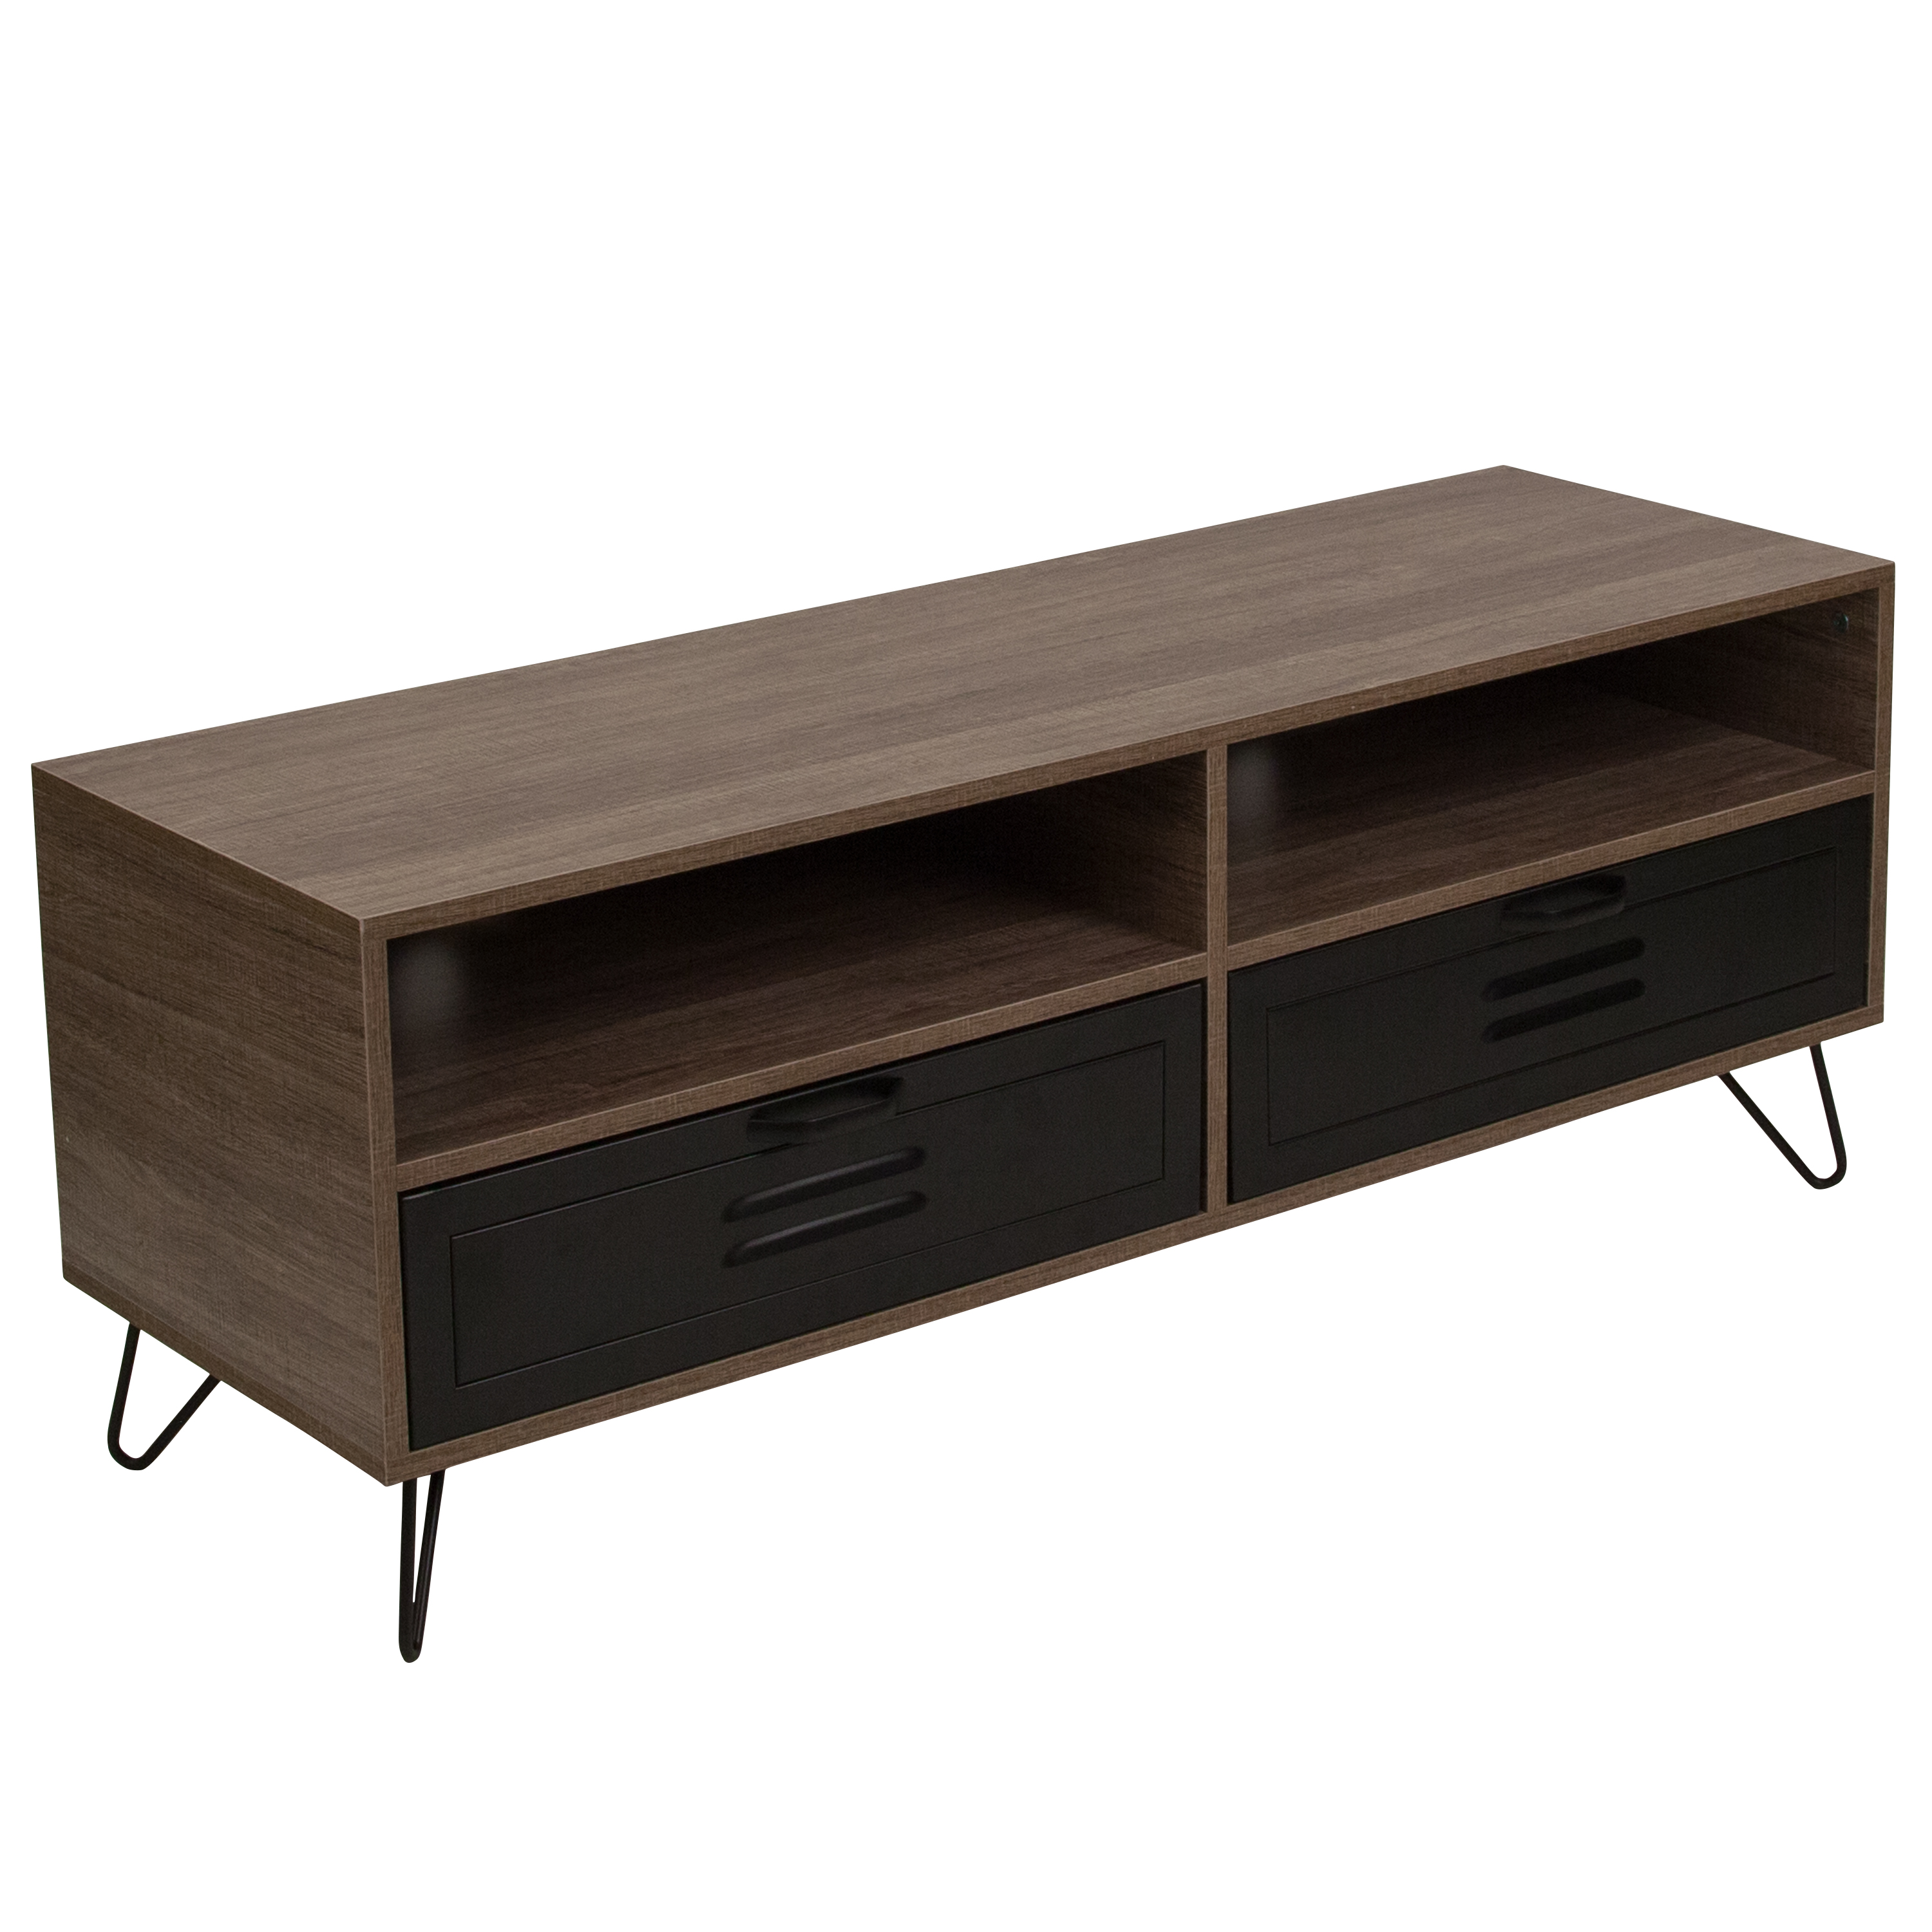 Flash Furniture Woodridge Collection Rustic Wood Grain Finish TV Stand with Metal Drawers and Black Metal Legs